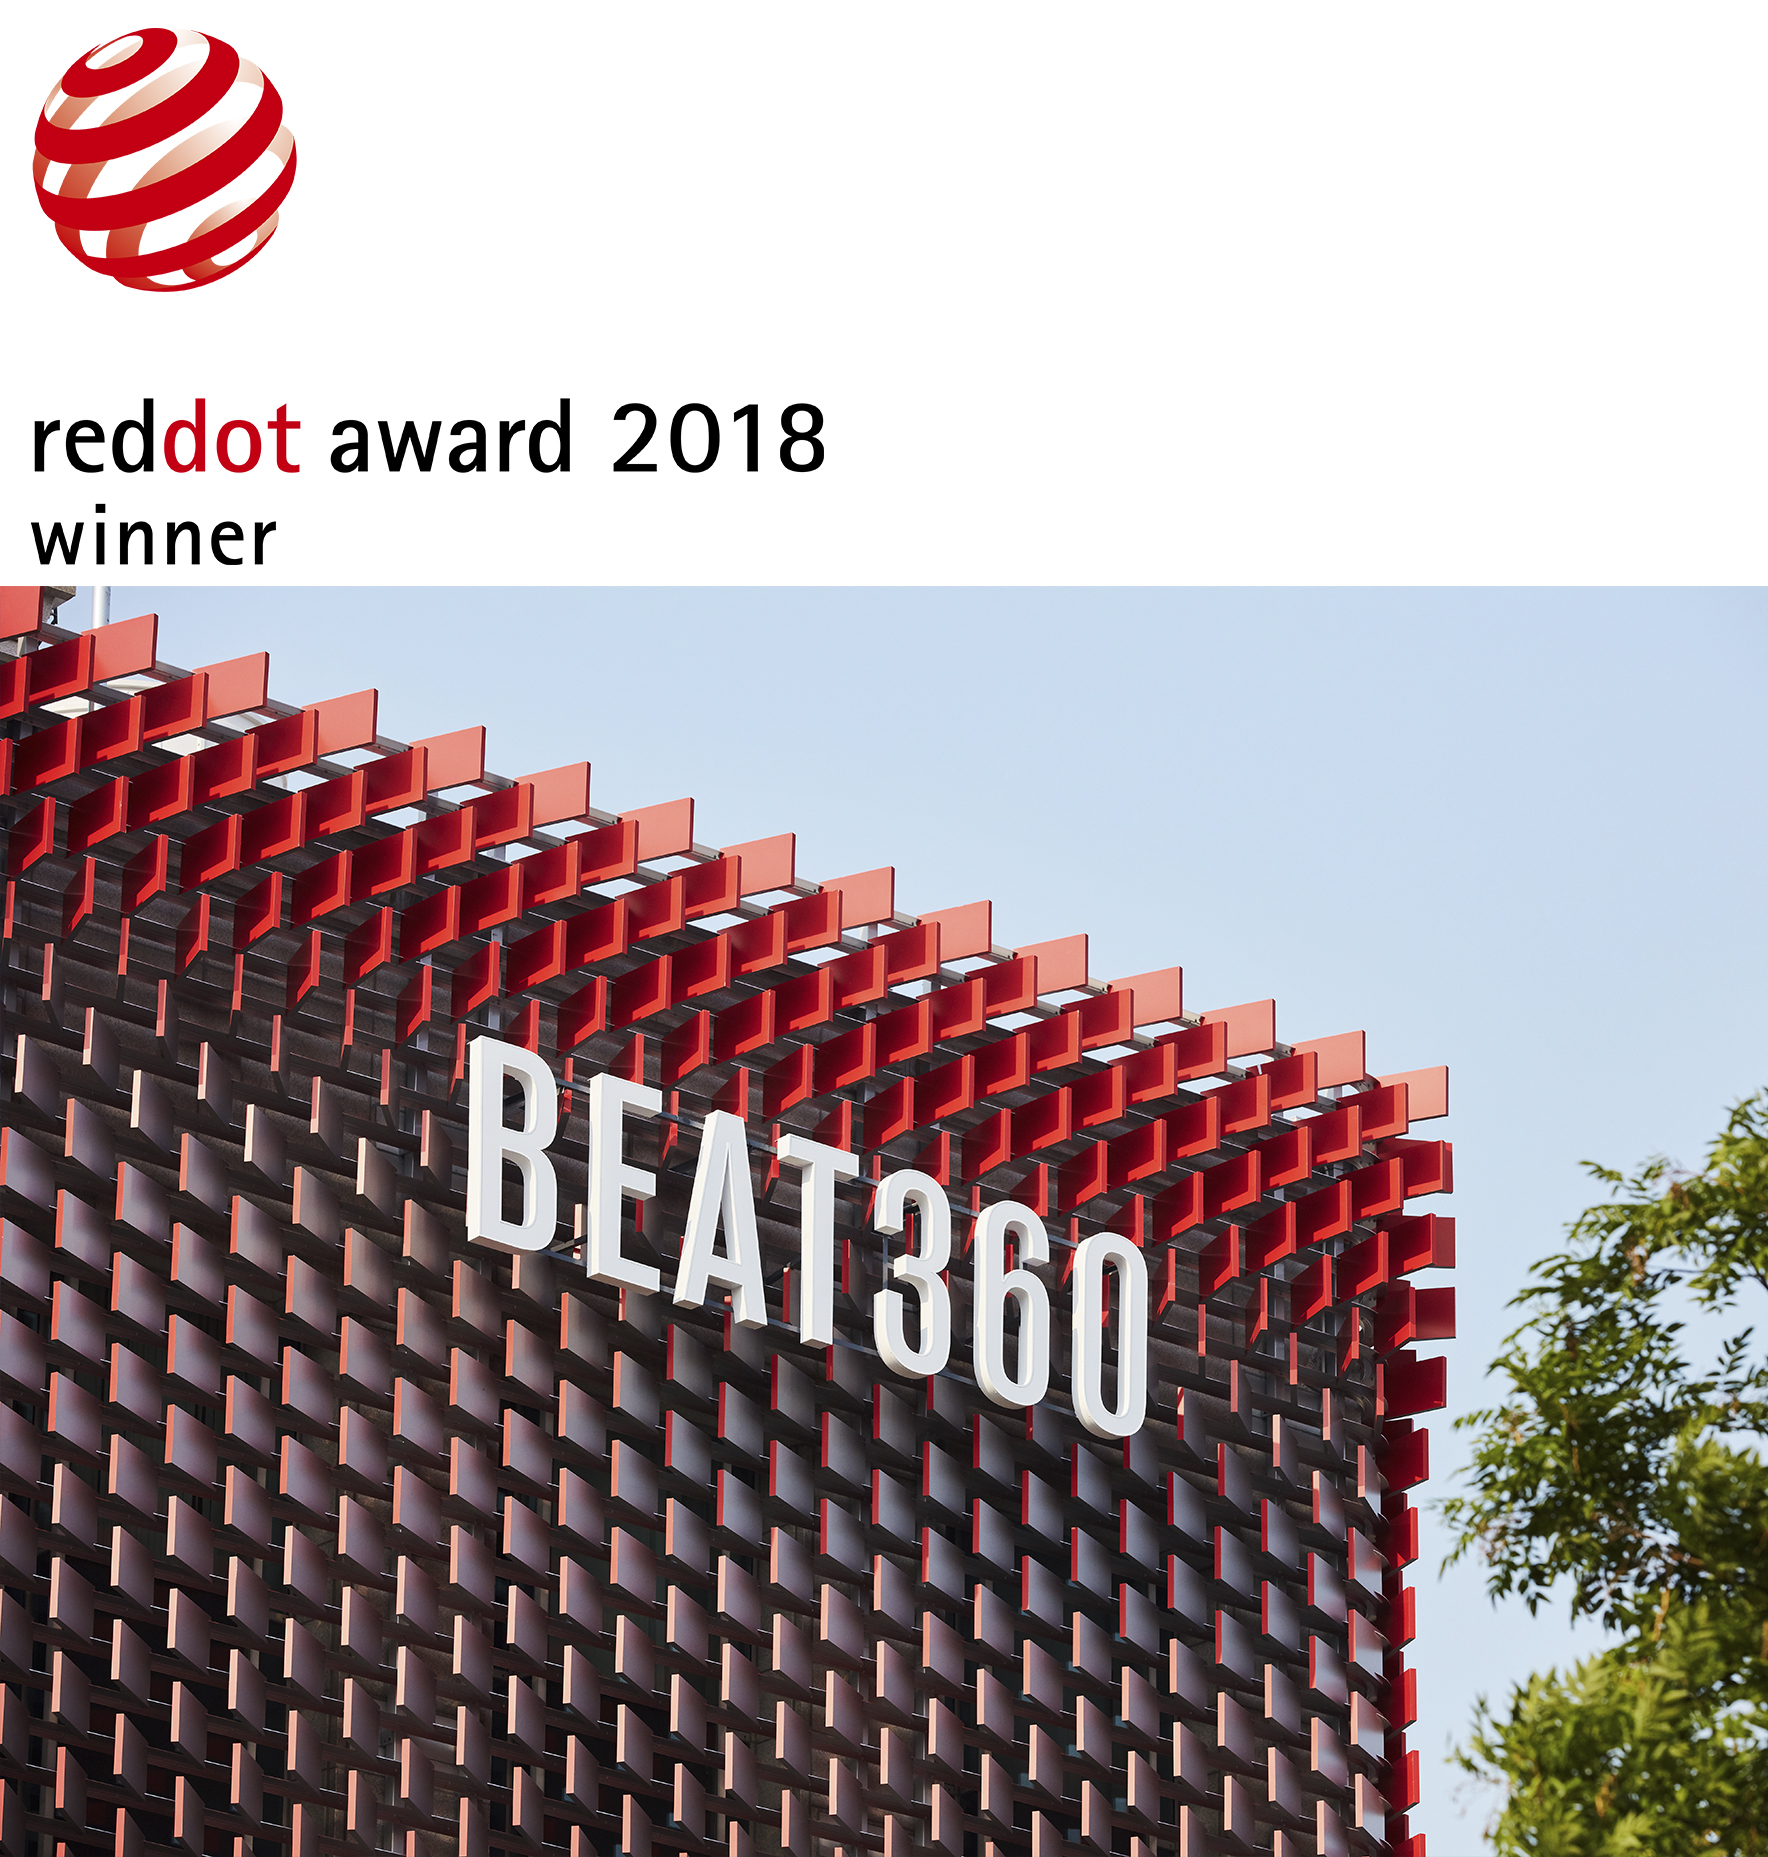 2018 reddot design award